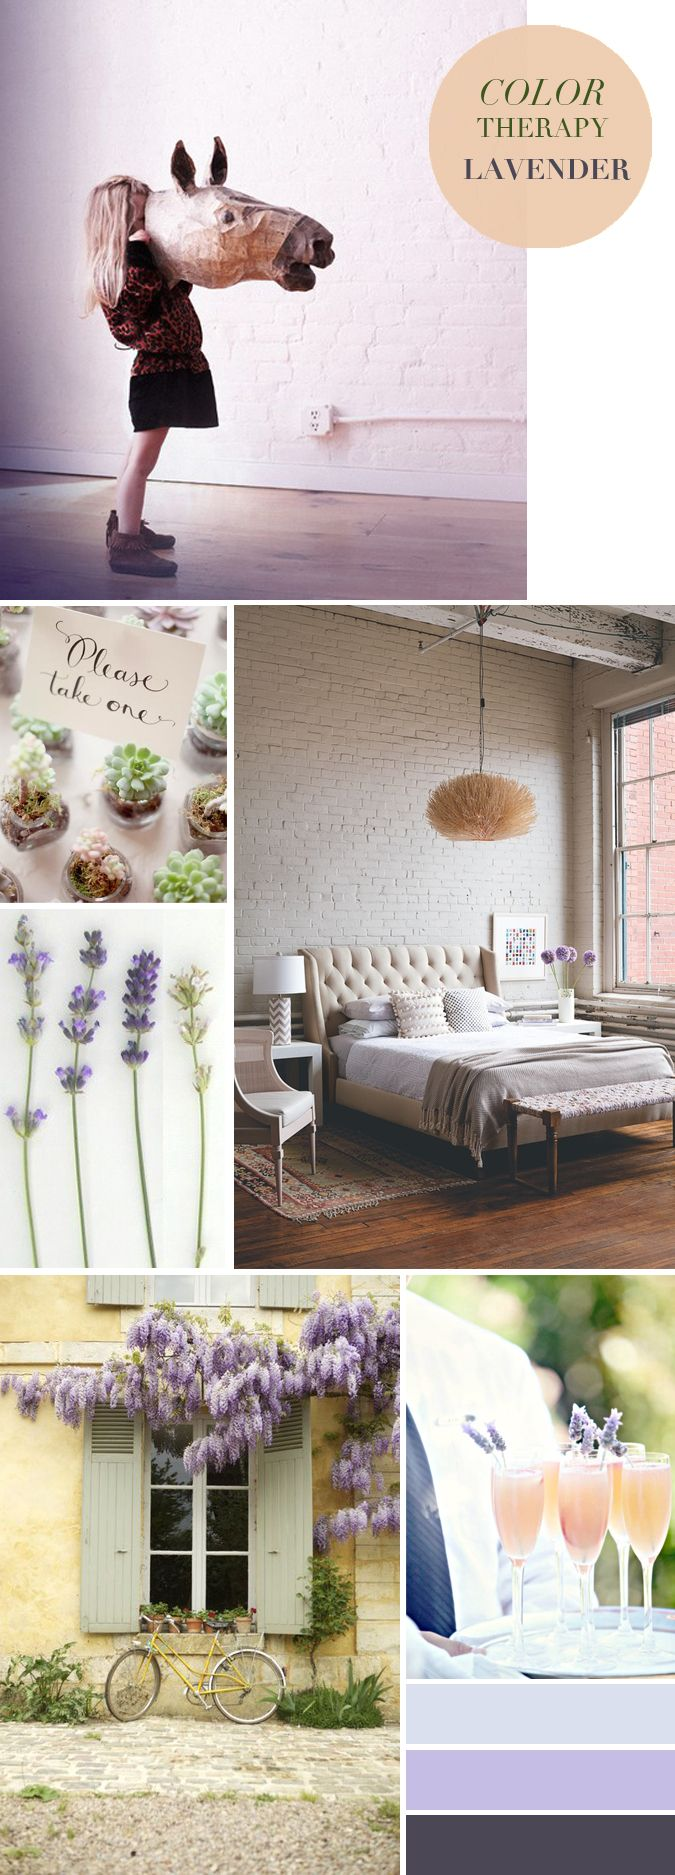 Colour therapy for stomach - Color Therapy Lavender Tinyinklings